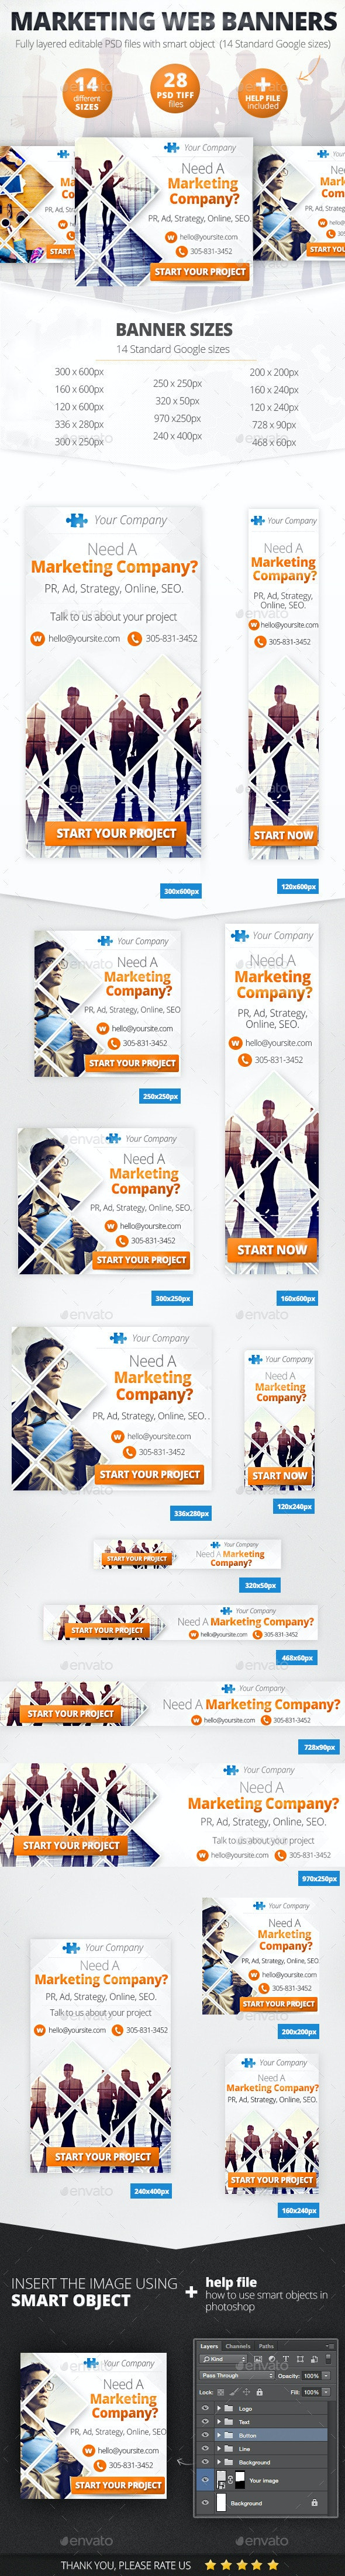 Business Marketing Web Banner Set - Banners & Ads Web Elements